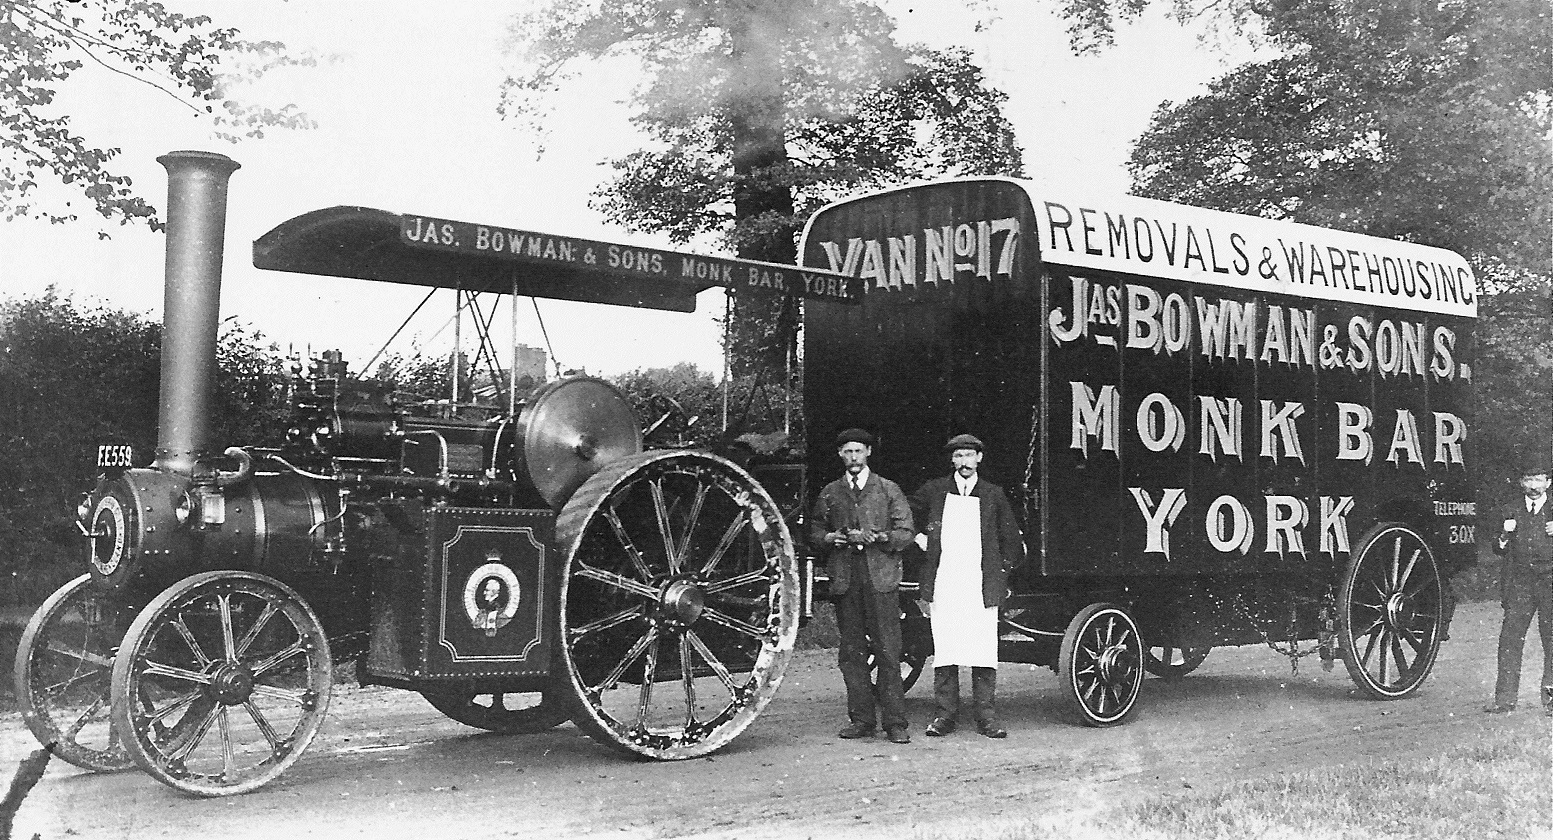 OLD PHOTOS: Furniture removal in York, 1900s-style